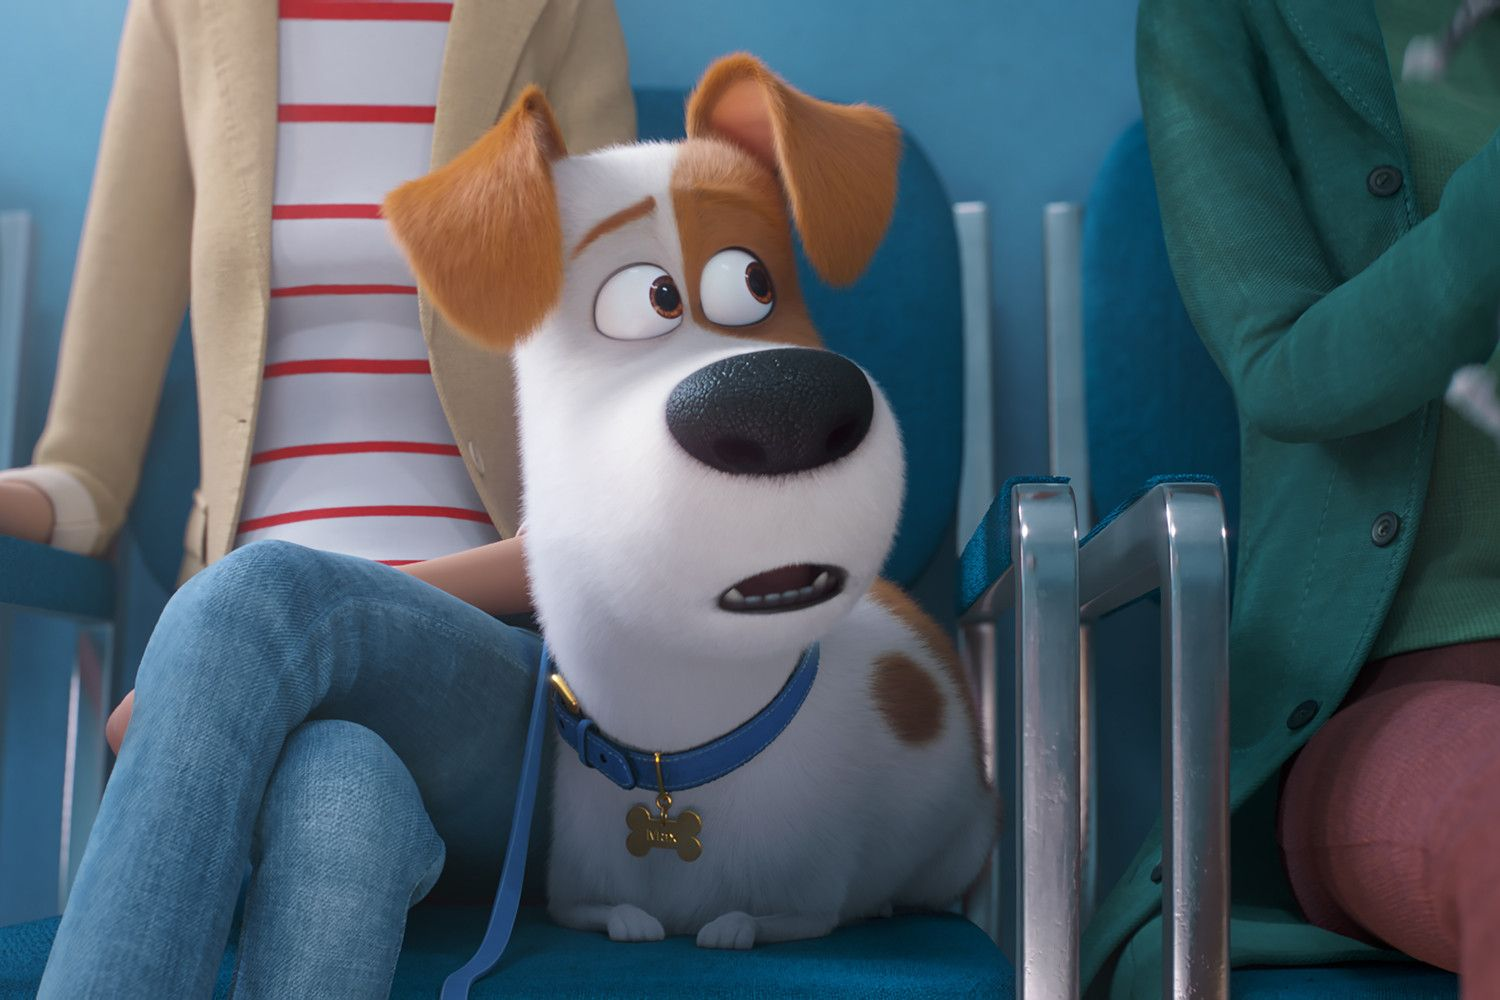 Watch Now Http Www Worldmovieshd Com Download Now Http Www Worldmovieshd Com The Secret Life Of With Images Secret Life Of Pets Dog Movies Animated Movies